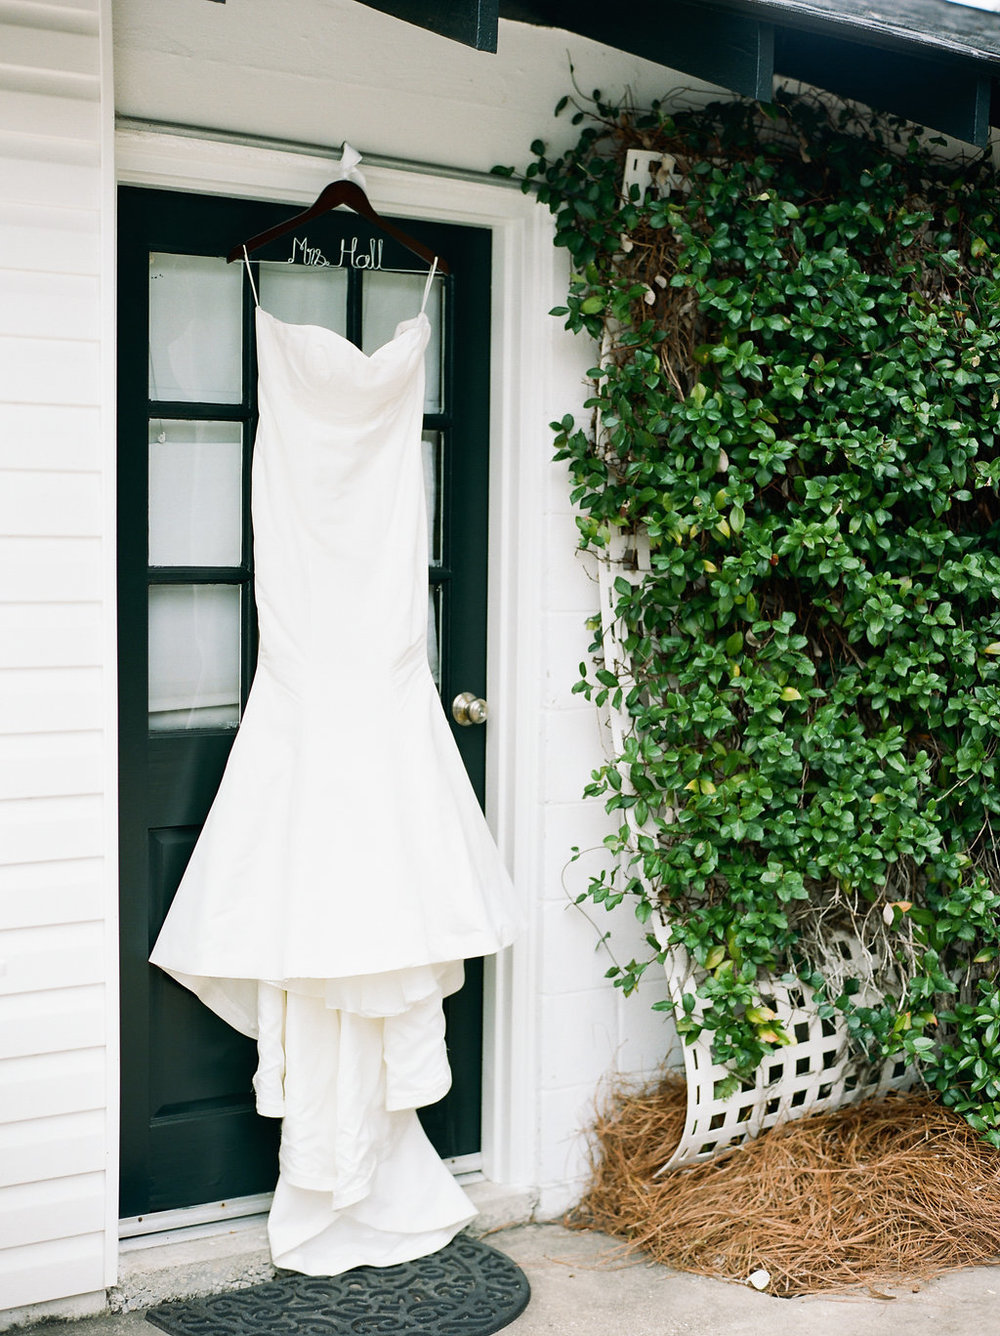 mps-photographie-nicole-miller-dakota-savannah-bridal-boutique-ivory-and-beau-bridal-boutique-savannah-weddings-savannah-bride-southern-bride-savannah-weddings-adele-amelia-veil-1.jpg